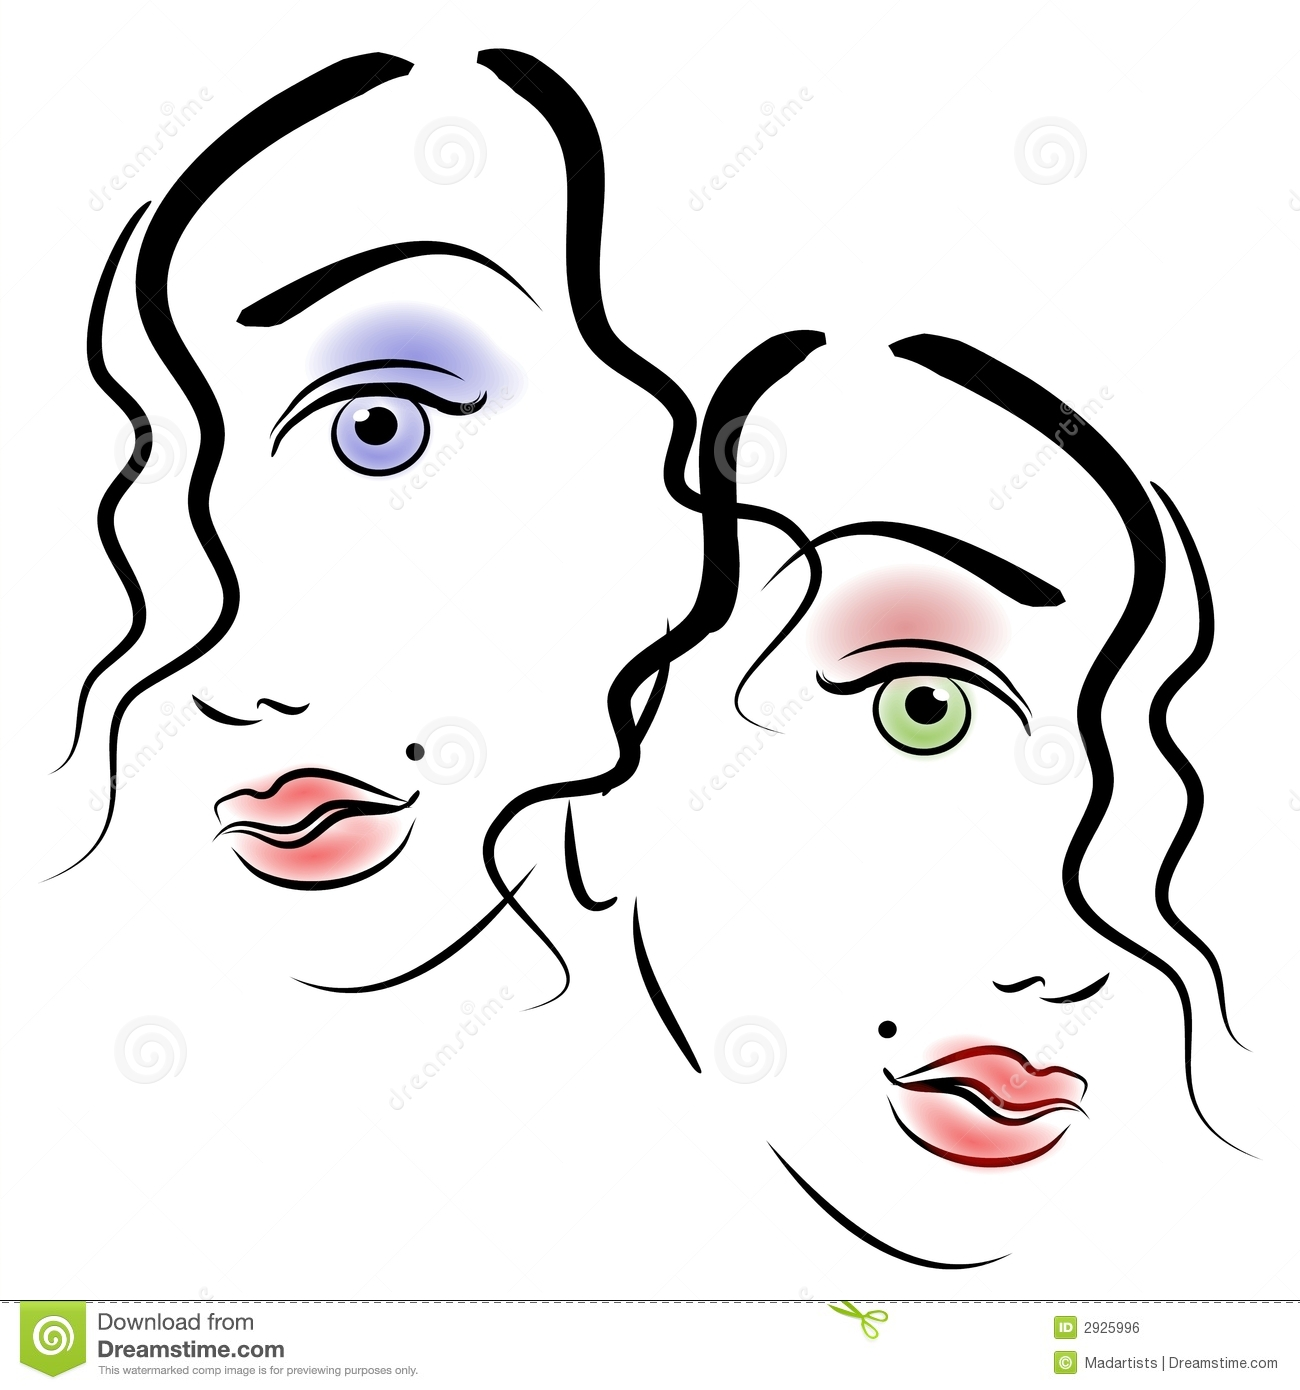 Art Portrait Of 2 Women S Faces In Black Outlines And Colored Eyes